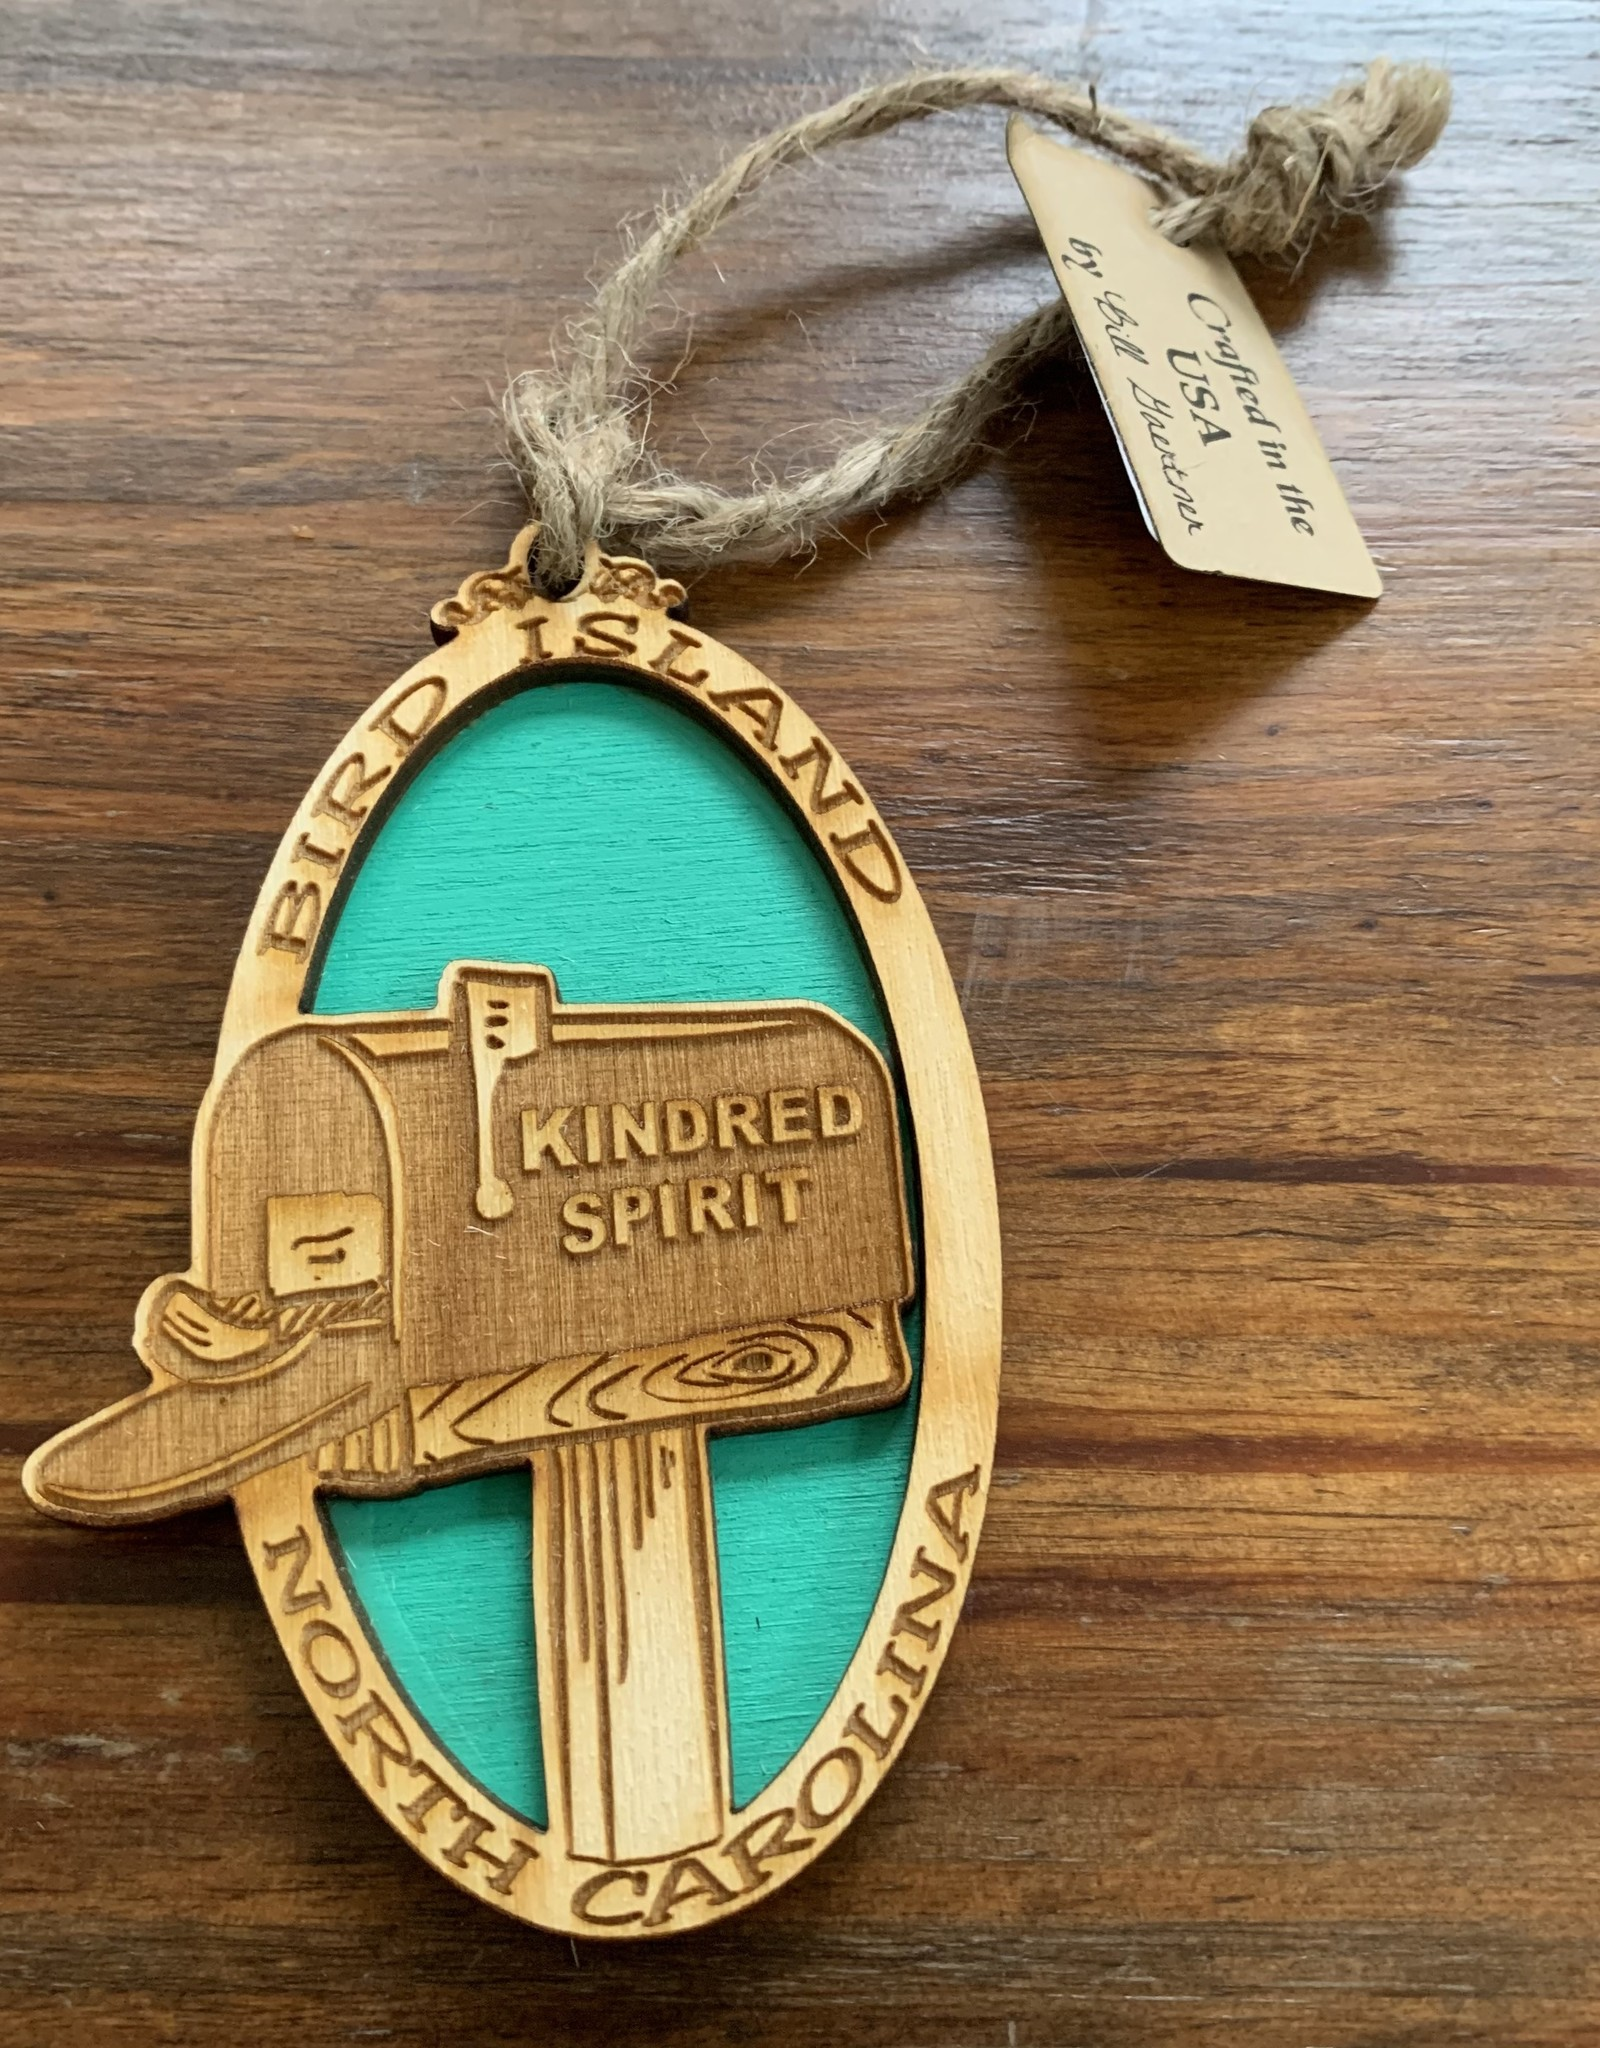 KINDRED SPIRIT KINDRED SPIRIT OVAL BILEVEL ORNAMENT (TEAL)